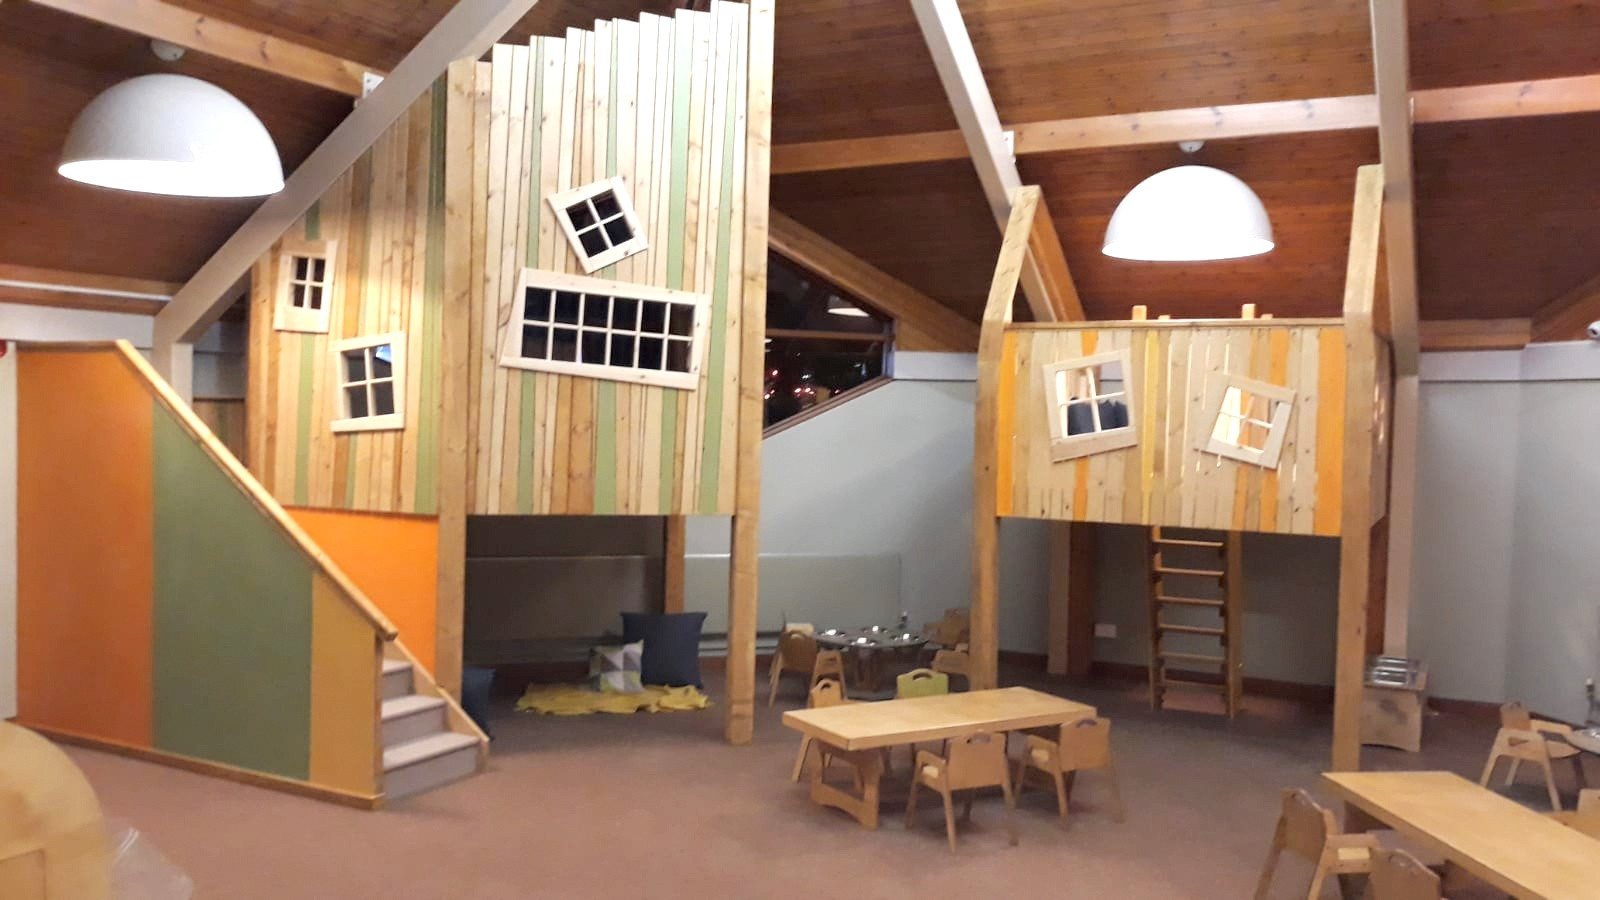 Quirky Mezzanine Spaces For Day Nurseries